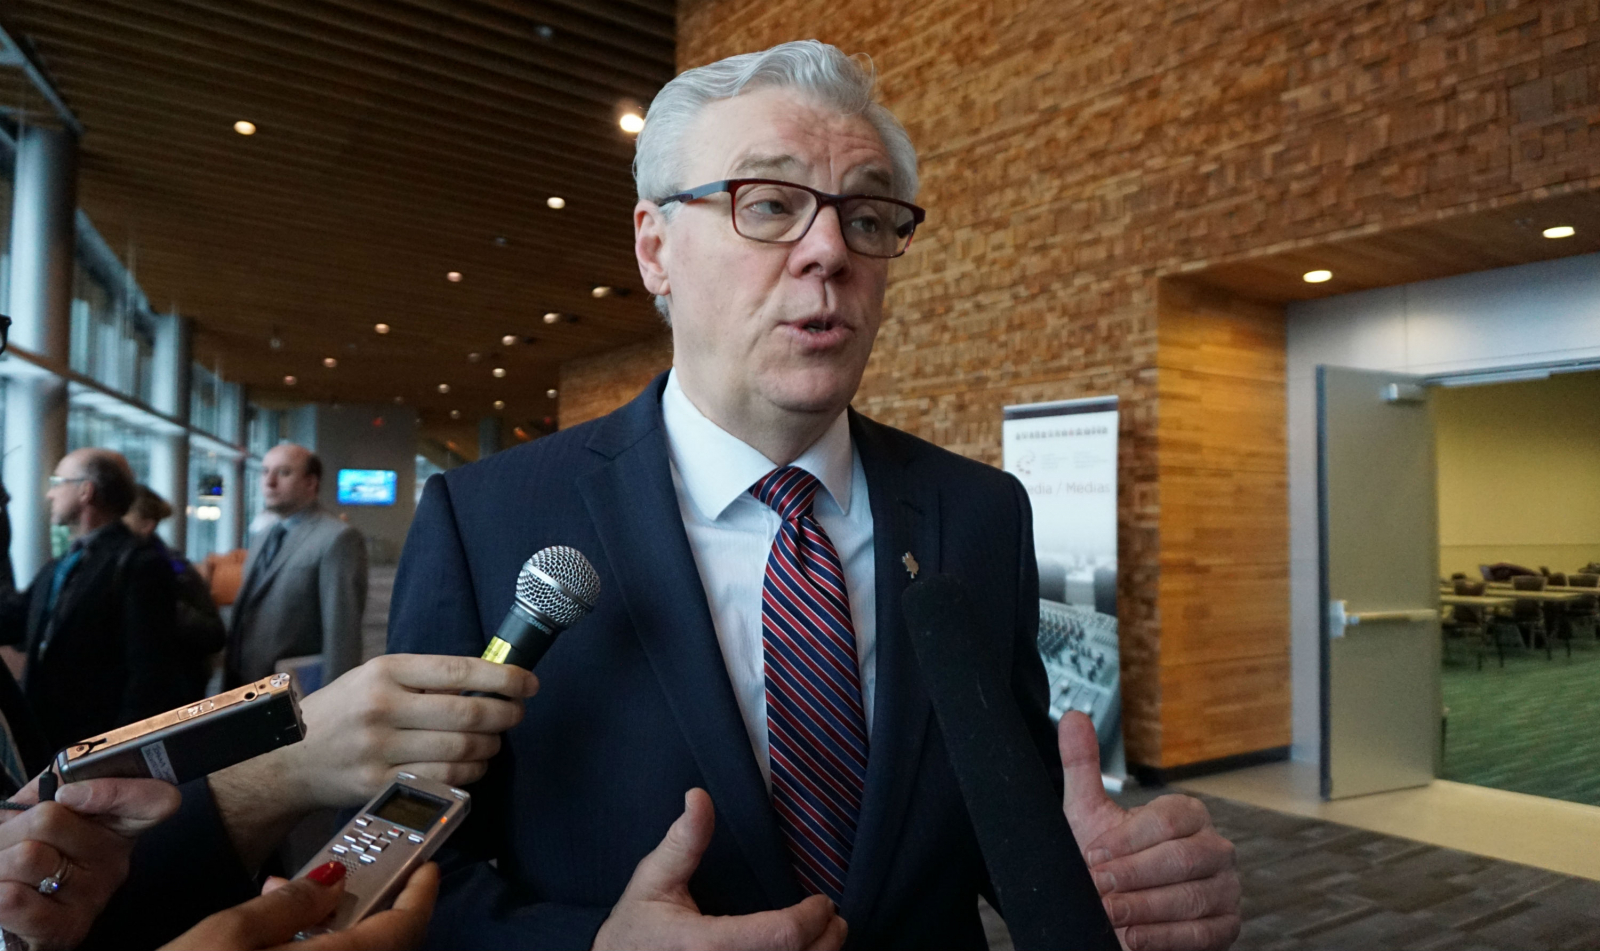 Manitoba, Premier Greg Selinger, carbon pricing, carbon tax, climate change, Vancouver, First Ministers'